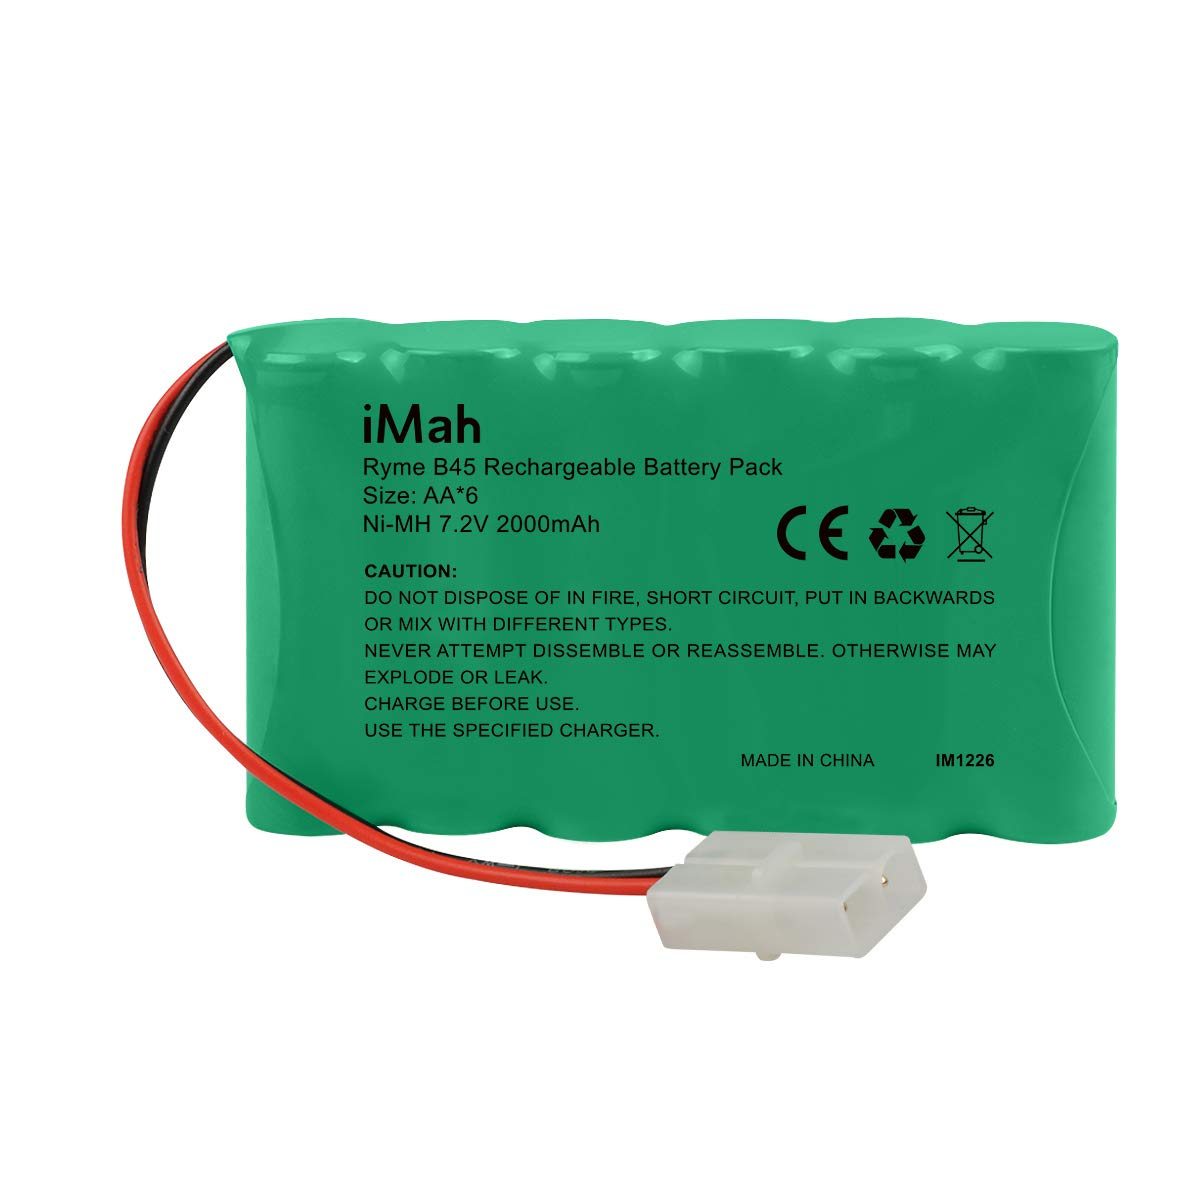 iMah SC6 7.2V Battery Pack 3000mAh Ni-MH Rechargeable with Standard Tamiya Plug for RC car Truck Boat